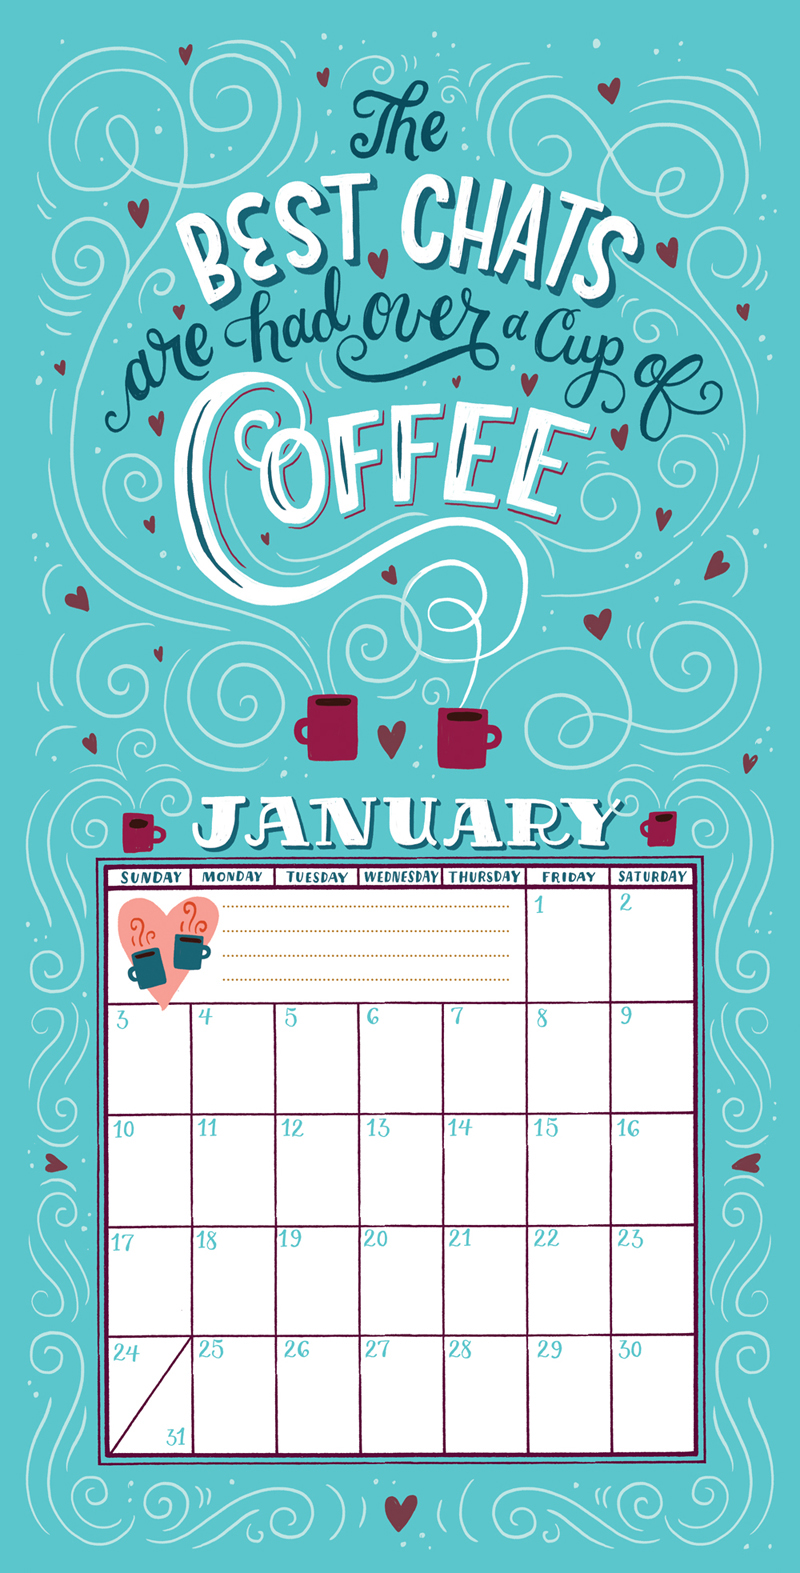 Freshly-Brewed-Coffee-Mini-Calendar-Mary-Kate-02